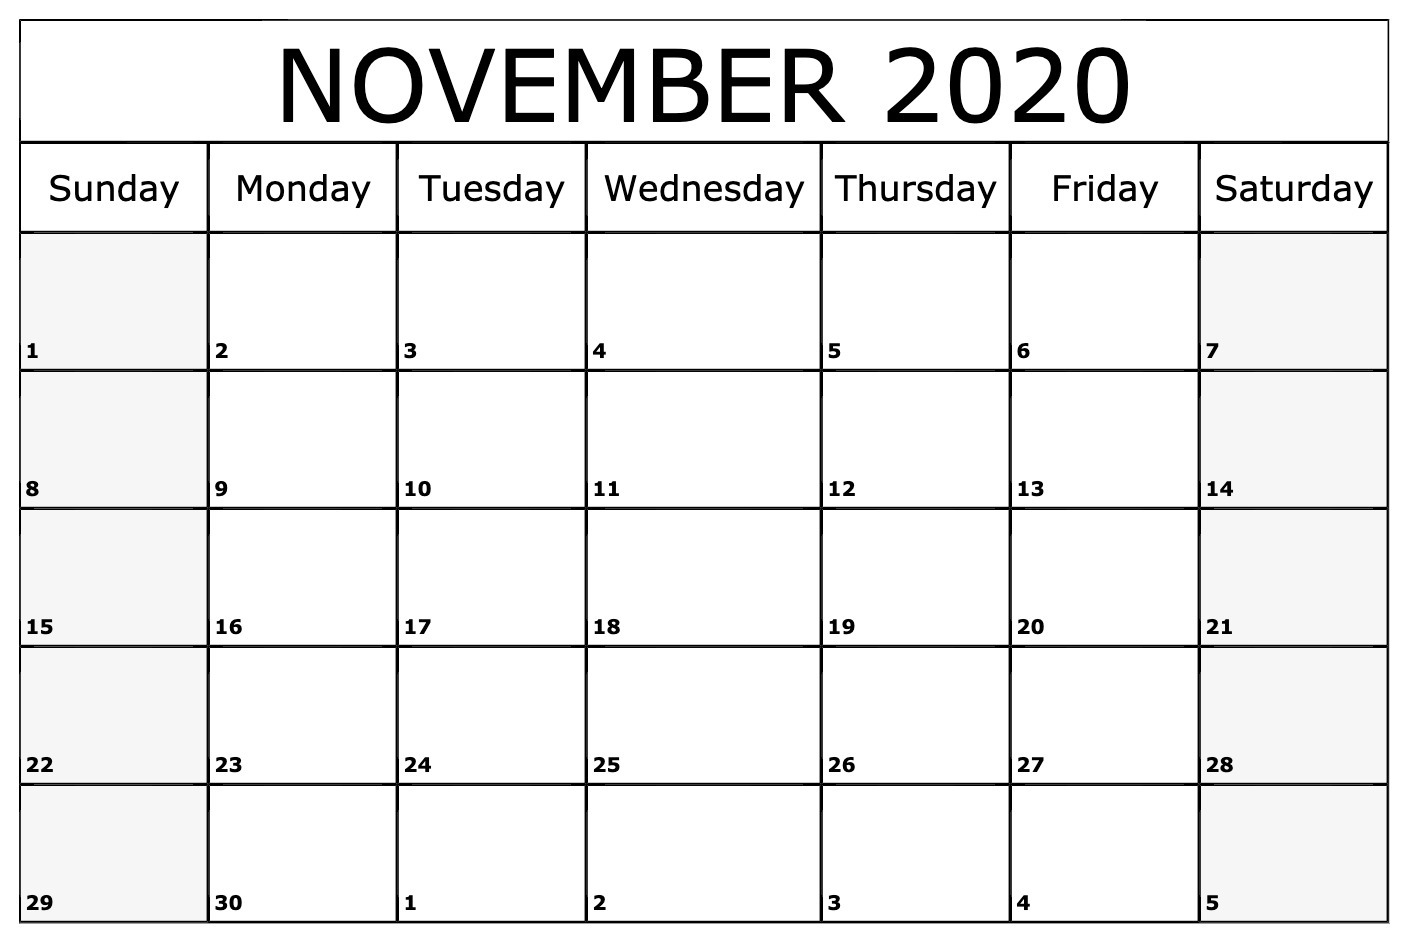 November 2020 Calendar Printable Template With Holidays